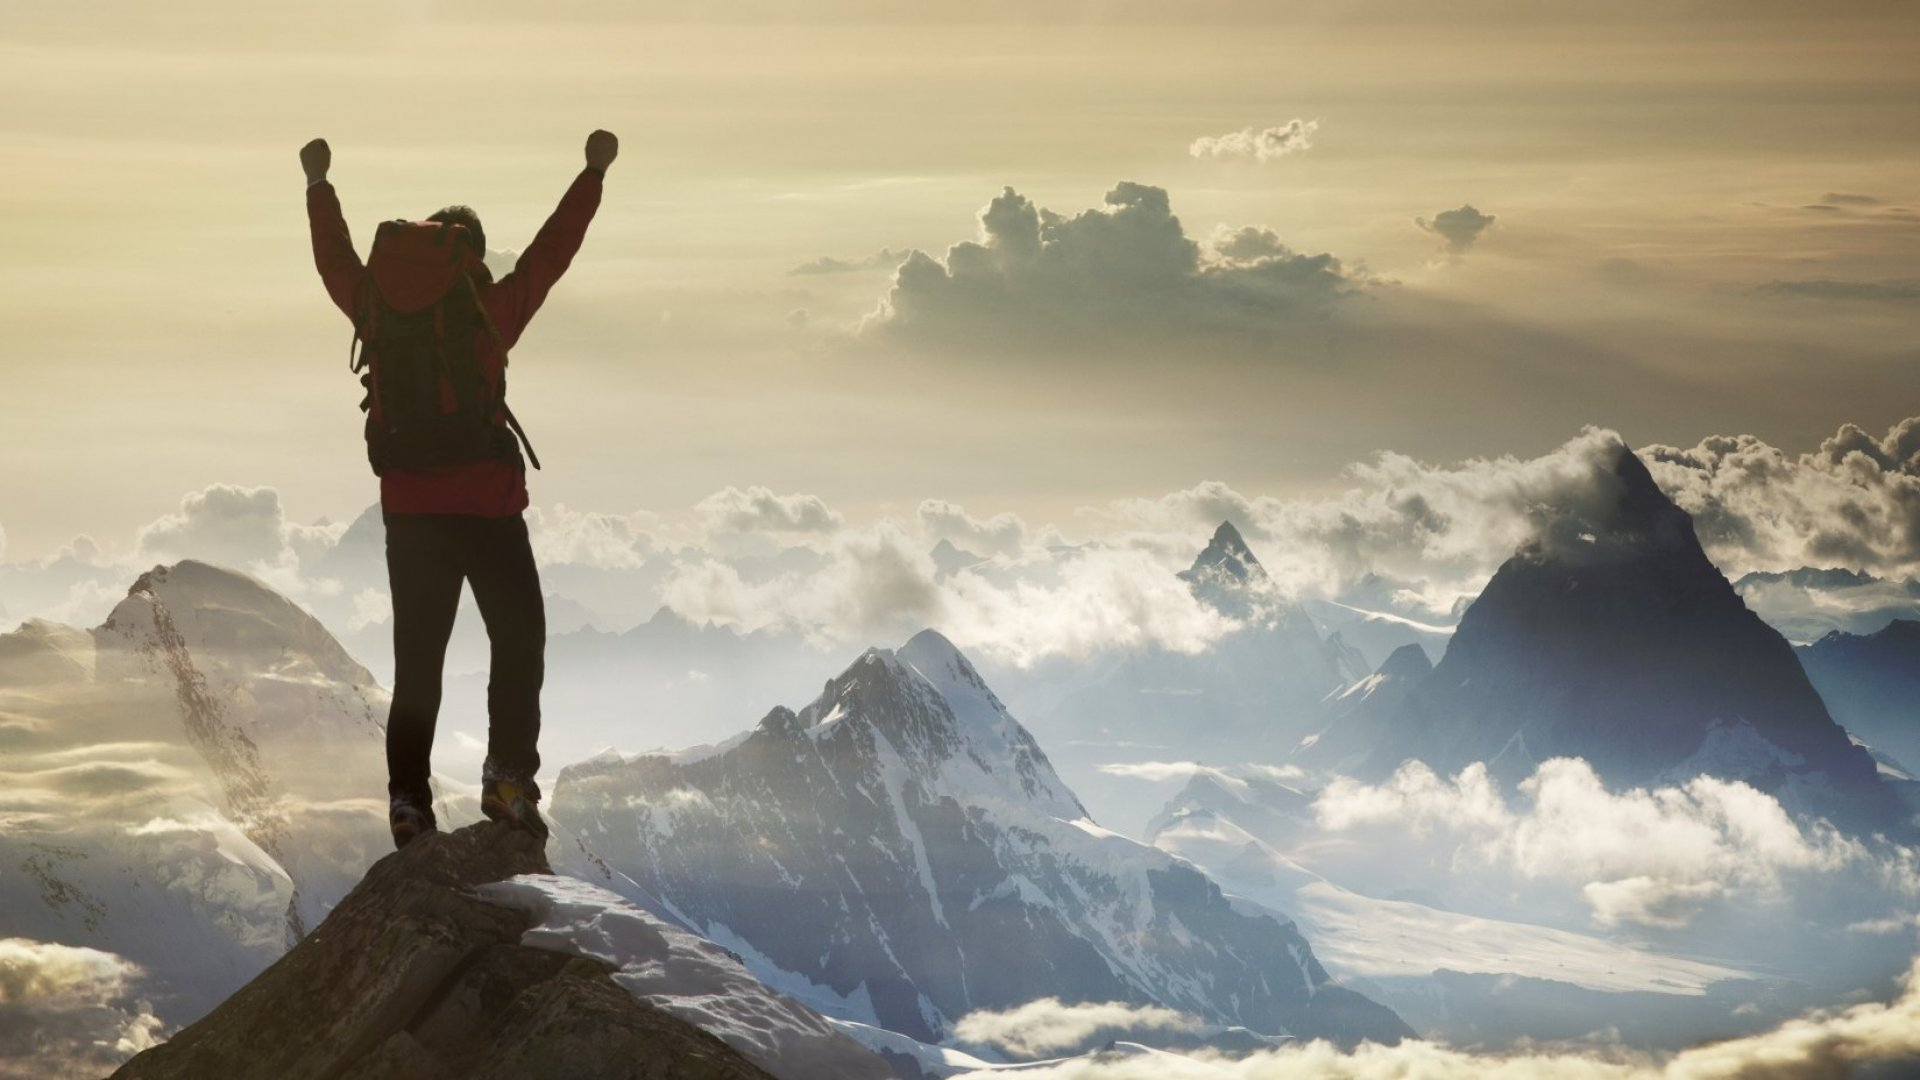 Setting Goals Is Easy. It's Much Harder to Finish Them (Unless You Follow These 3 Steps)